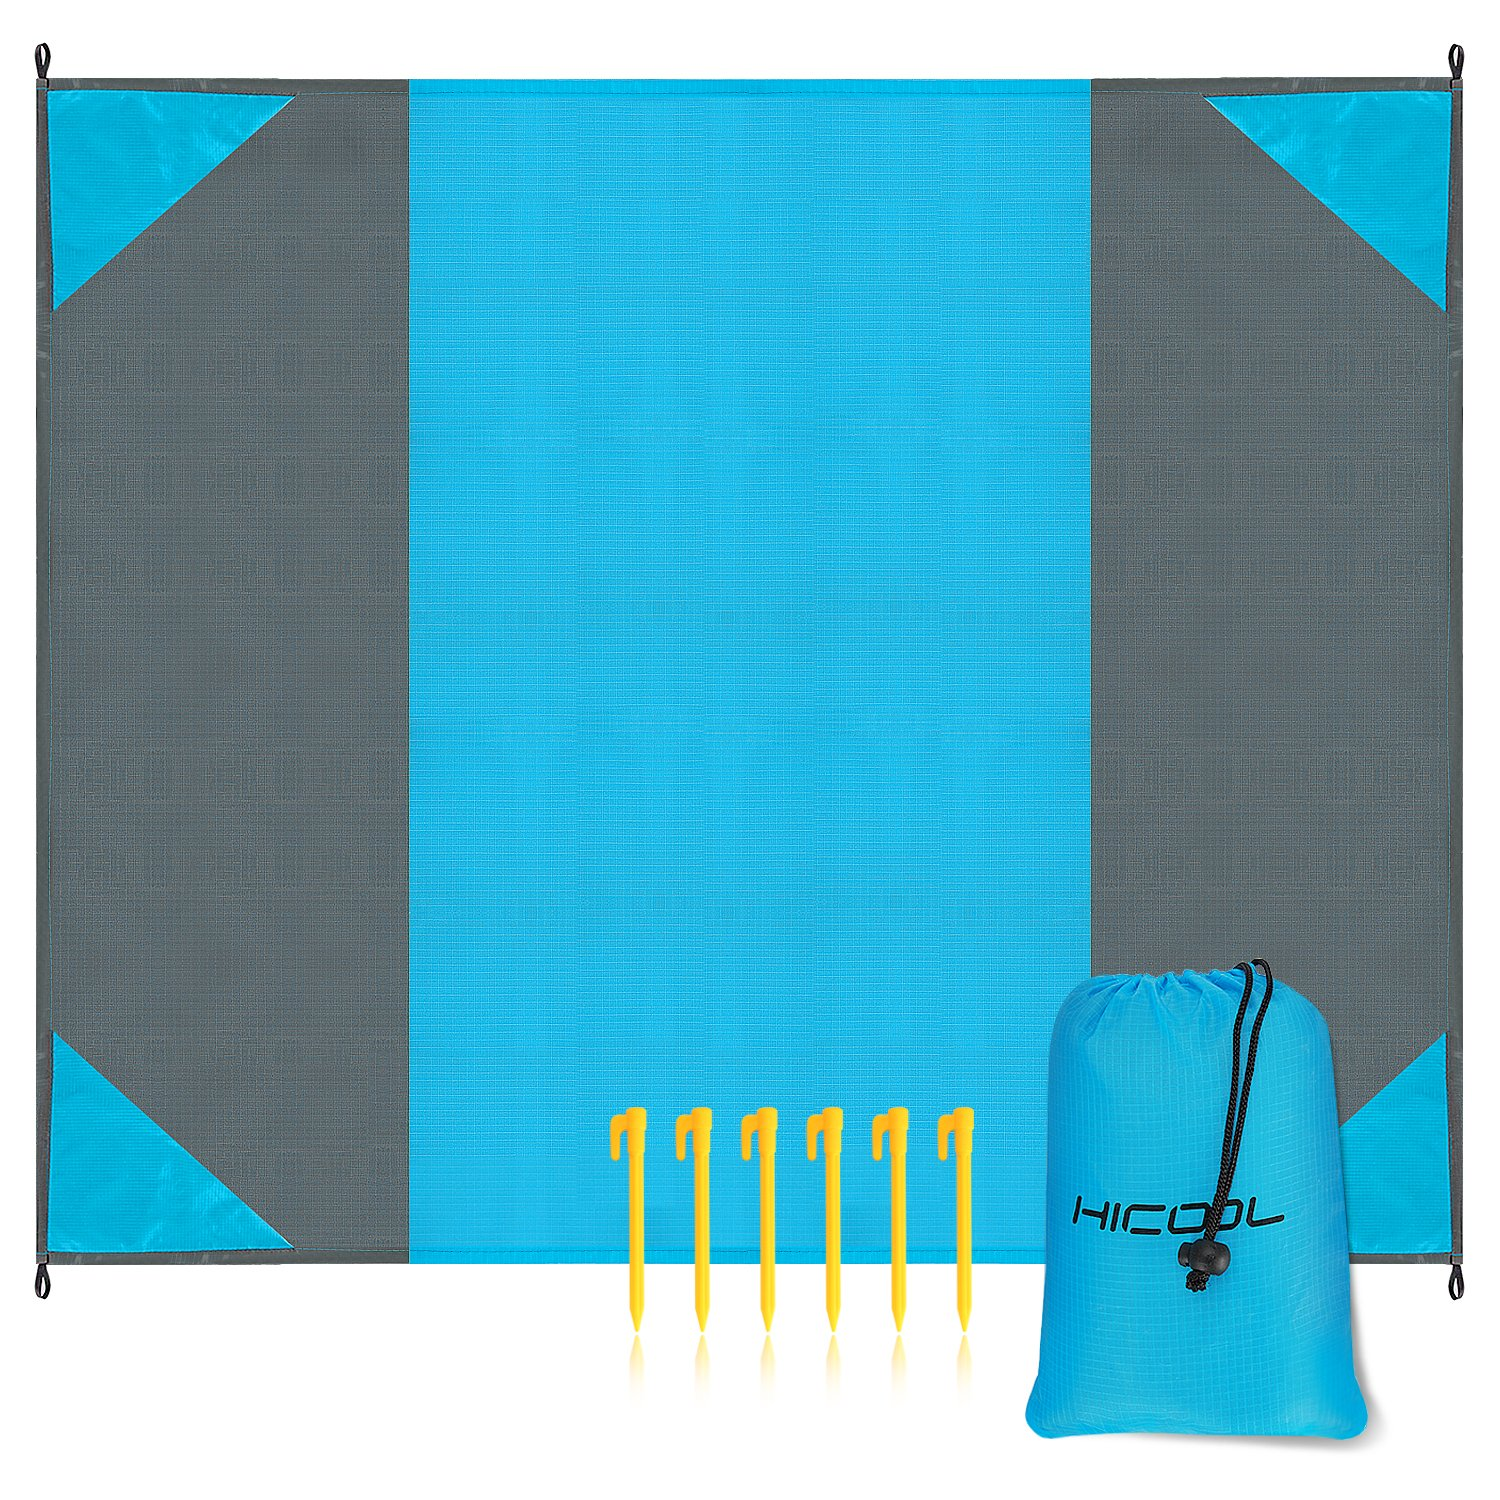 Hicool Oversize 275cm*213cm Beach Blanket Portable Polyester Waterproof Sand-proof Damp Proof Ultra-lightweight Large Picnic Mat Outdoor Machine Washable and Fast Drying Beach Mat (Grey&Blue)